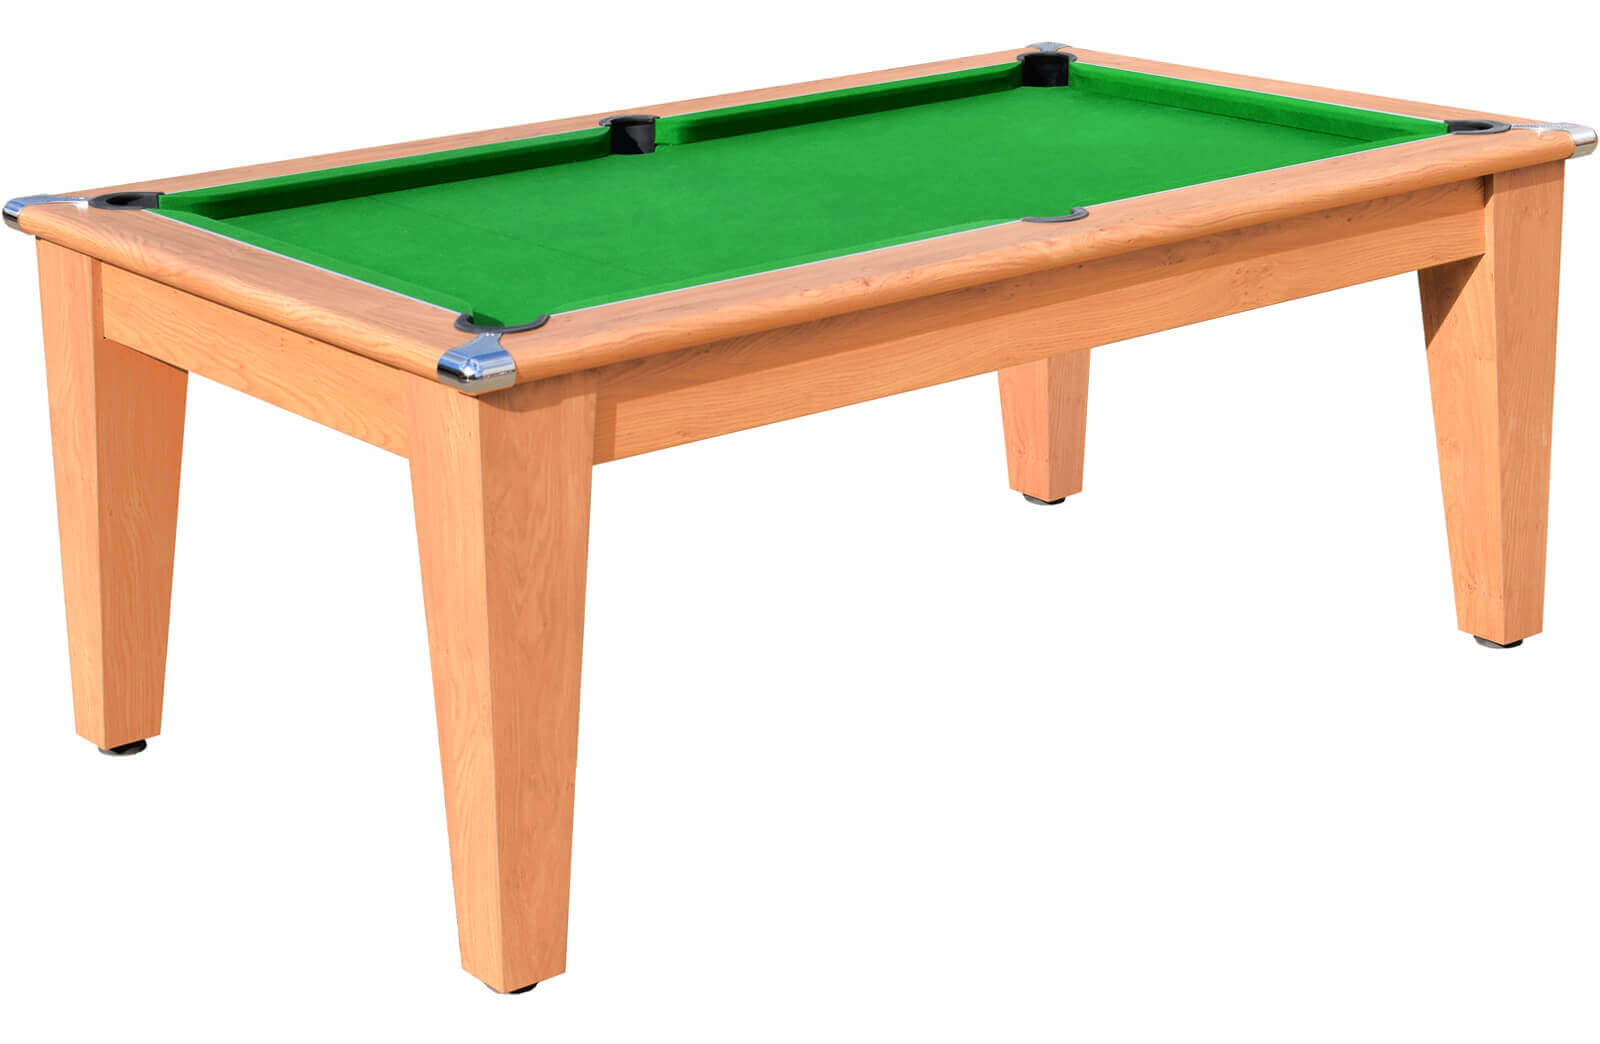 The Classic Diner slate bed multi-purpose pool table